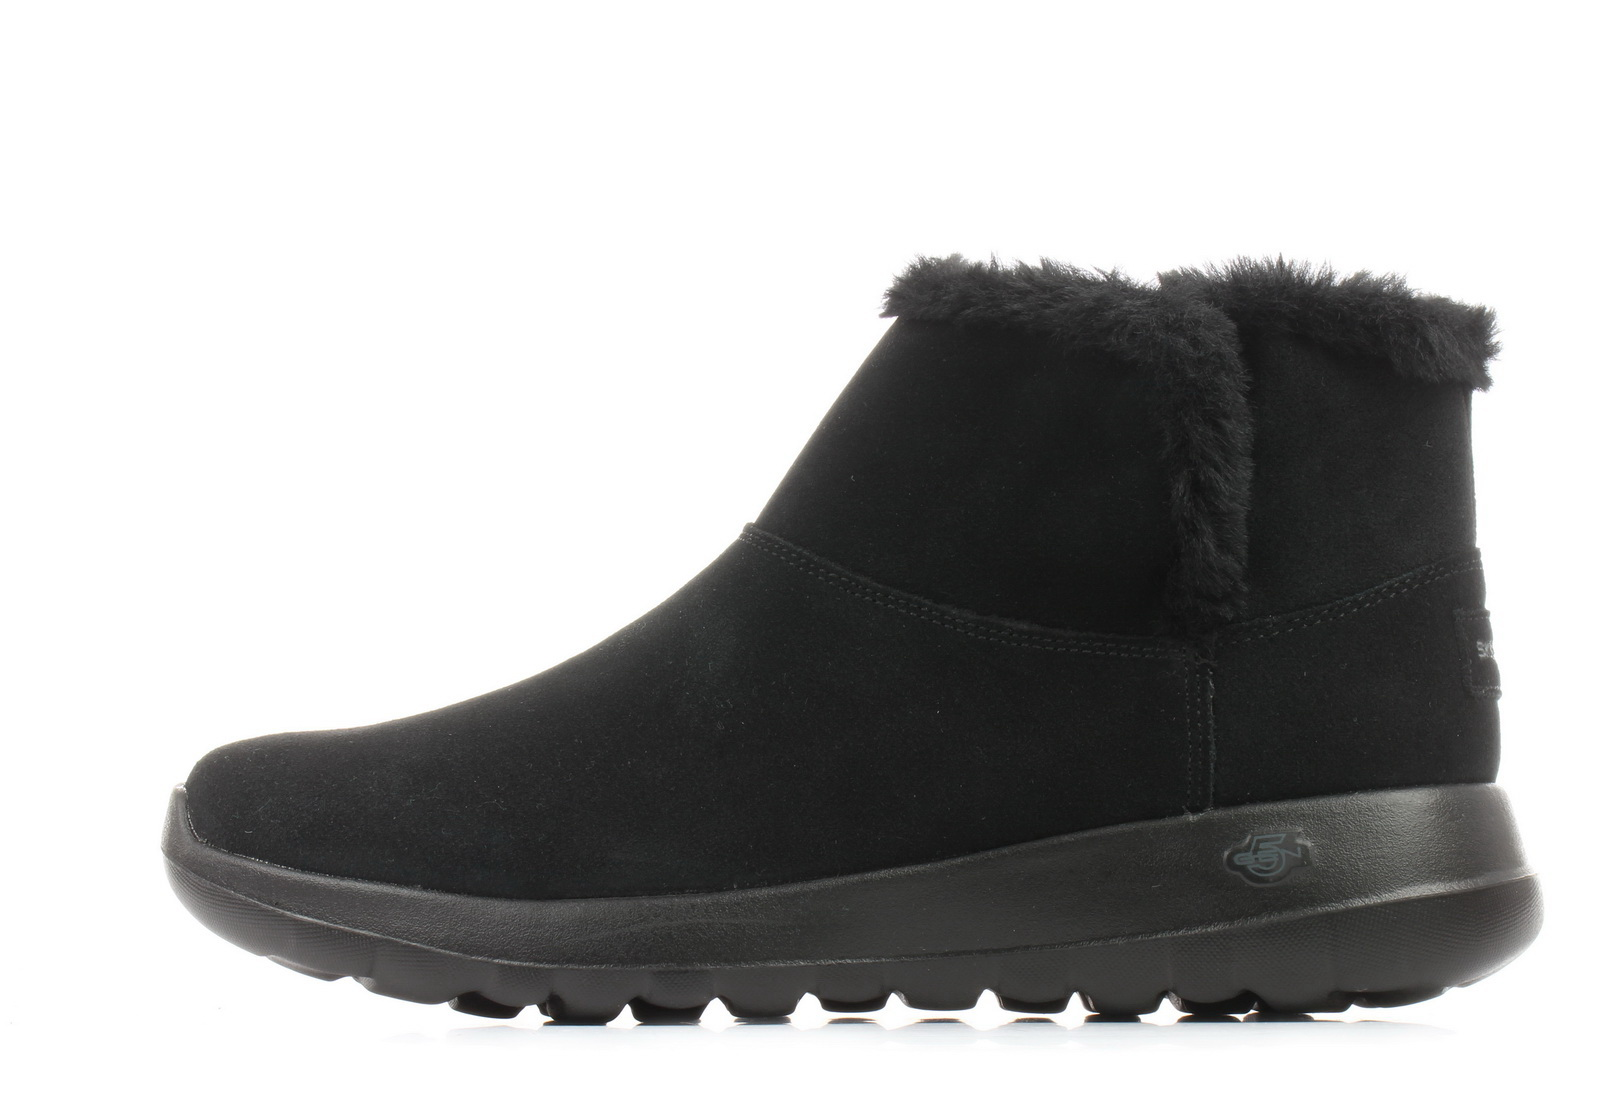 Skechers Boots On The Go Joy Bundle Up 15501 BBK Online shop for sneakers, shoes and boots